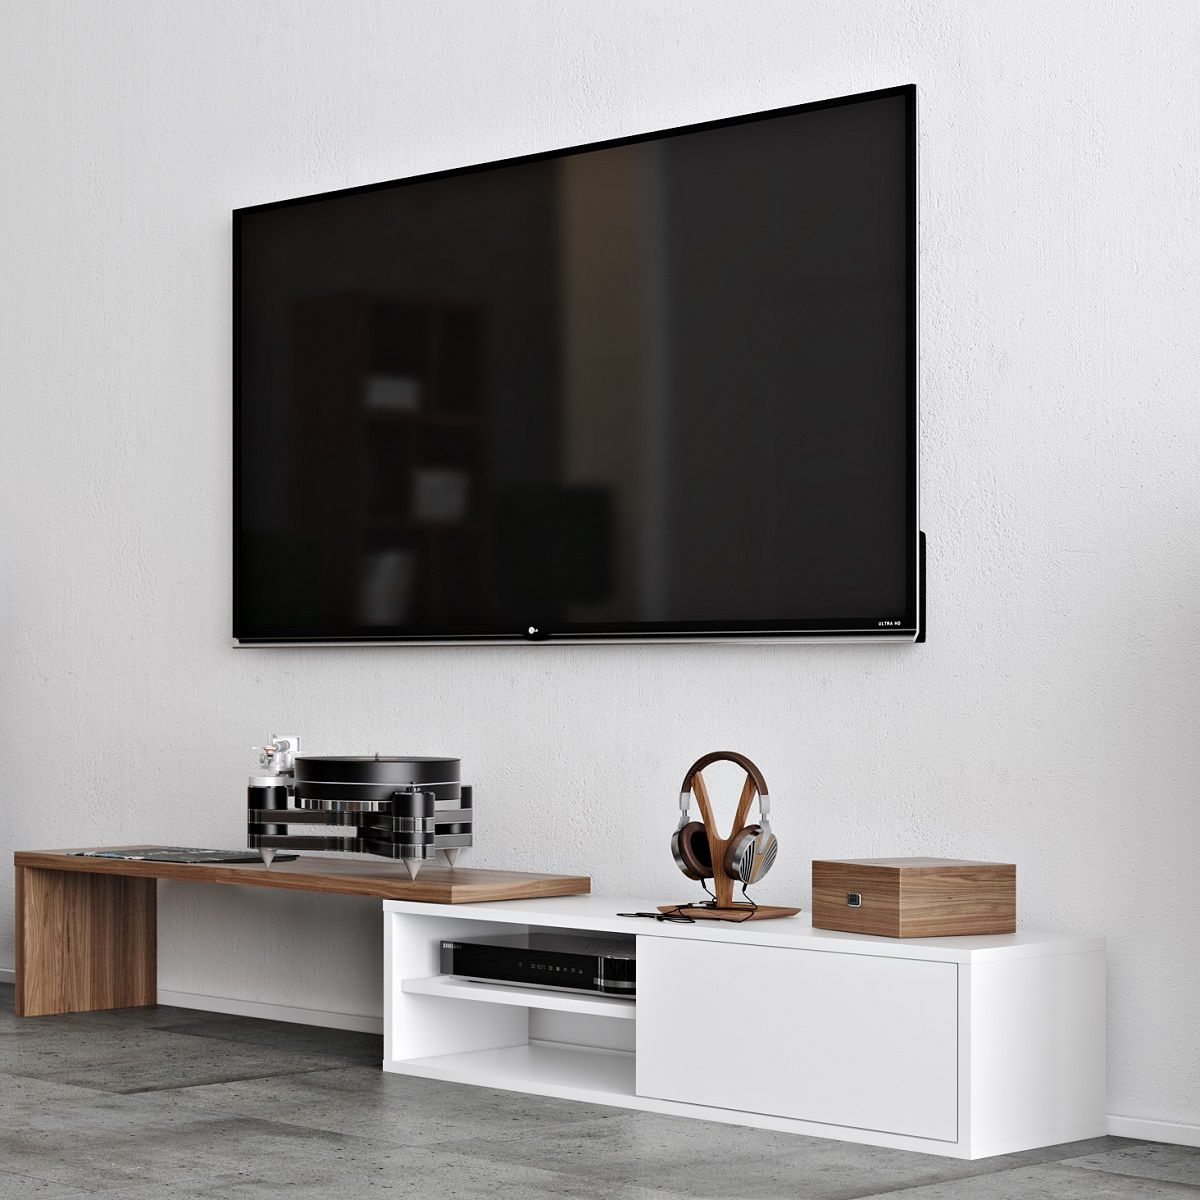 Move Tv Stand Is A Modern And Functional Piece Of Furniture Designed To Organize Living Rooms En Tv Cabinets White Entertainment Stand Contemporary Furniture